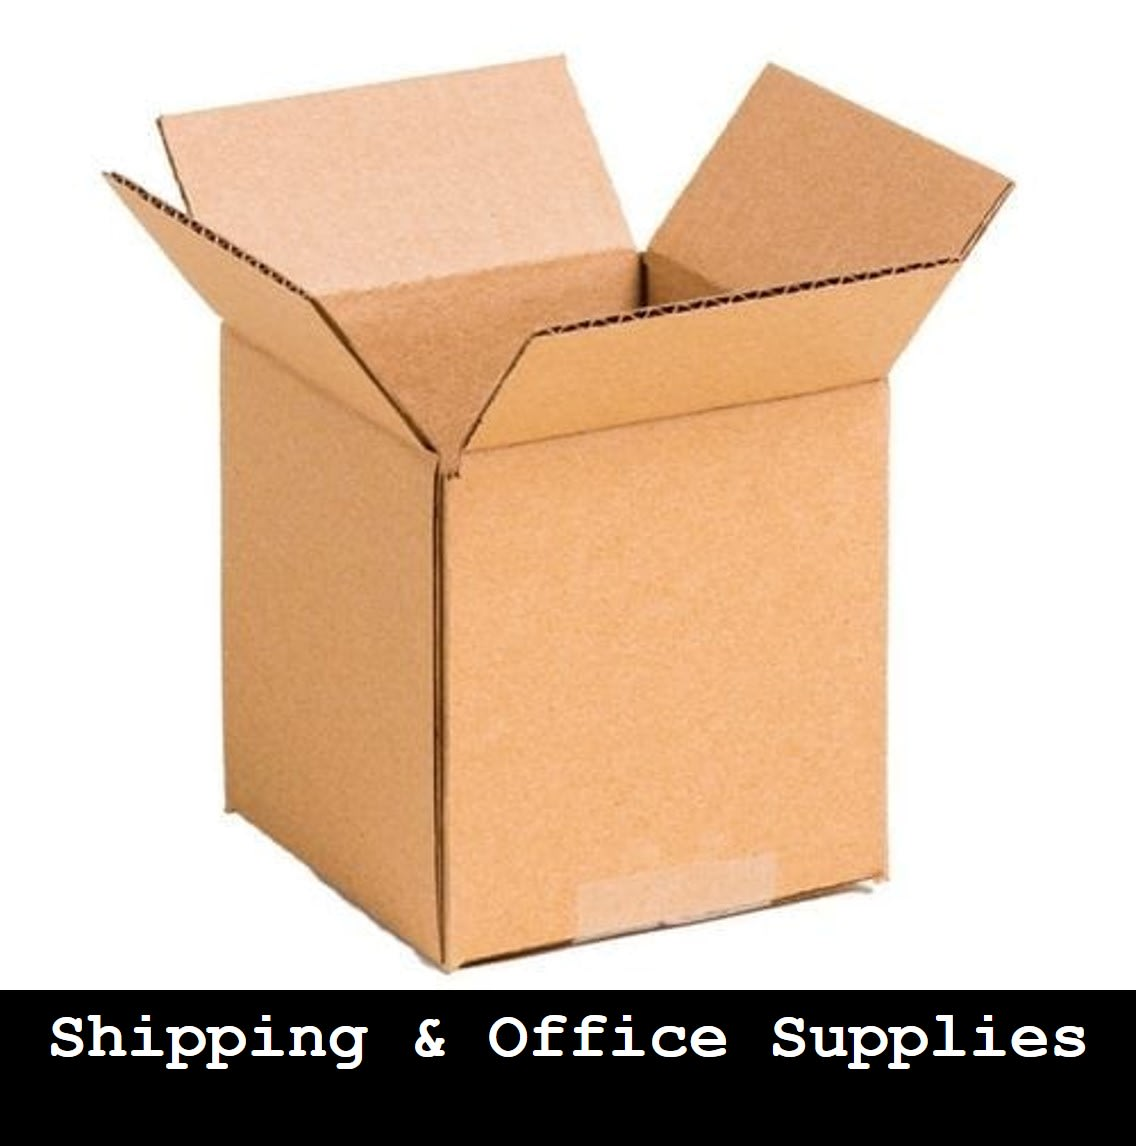 Shipping | Smith Industrial Supply | Port Colborne Industrial Supply